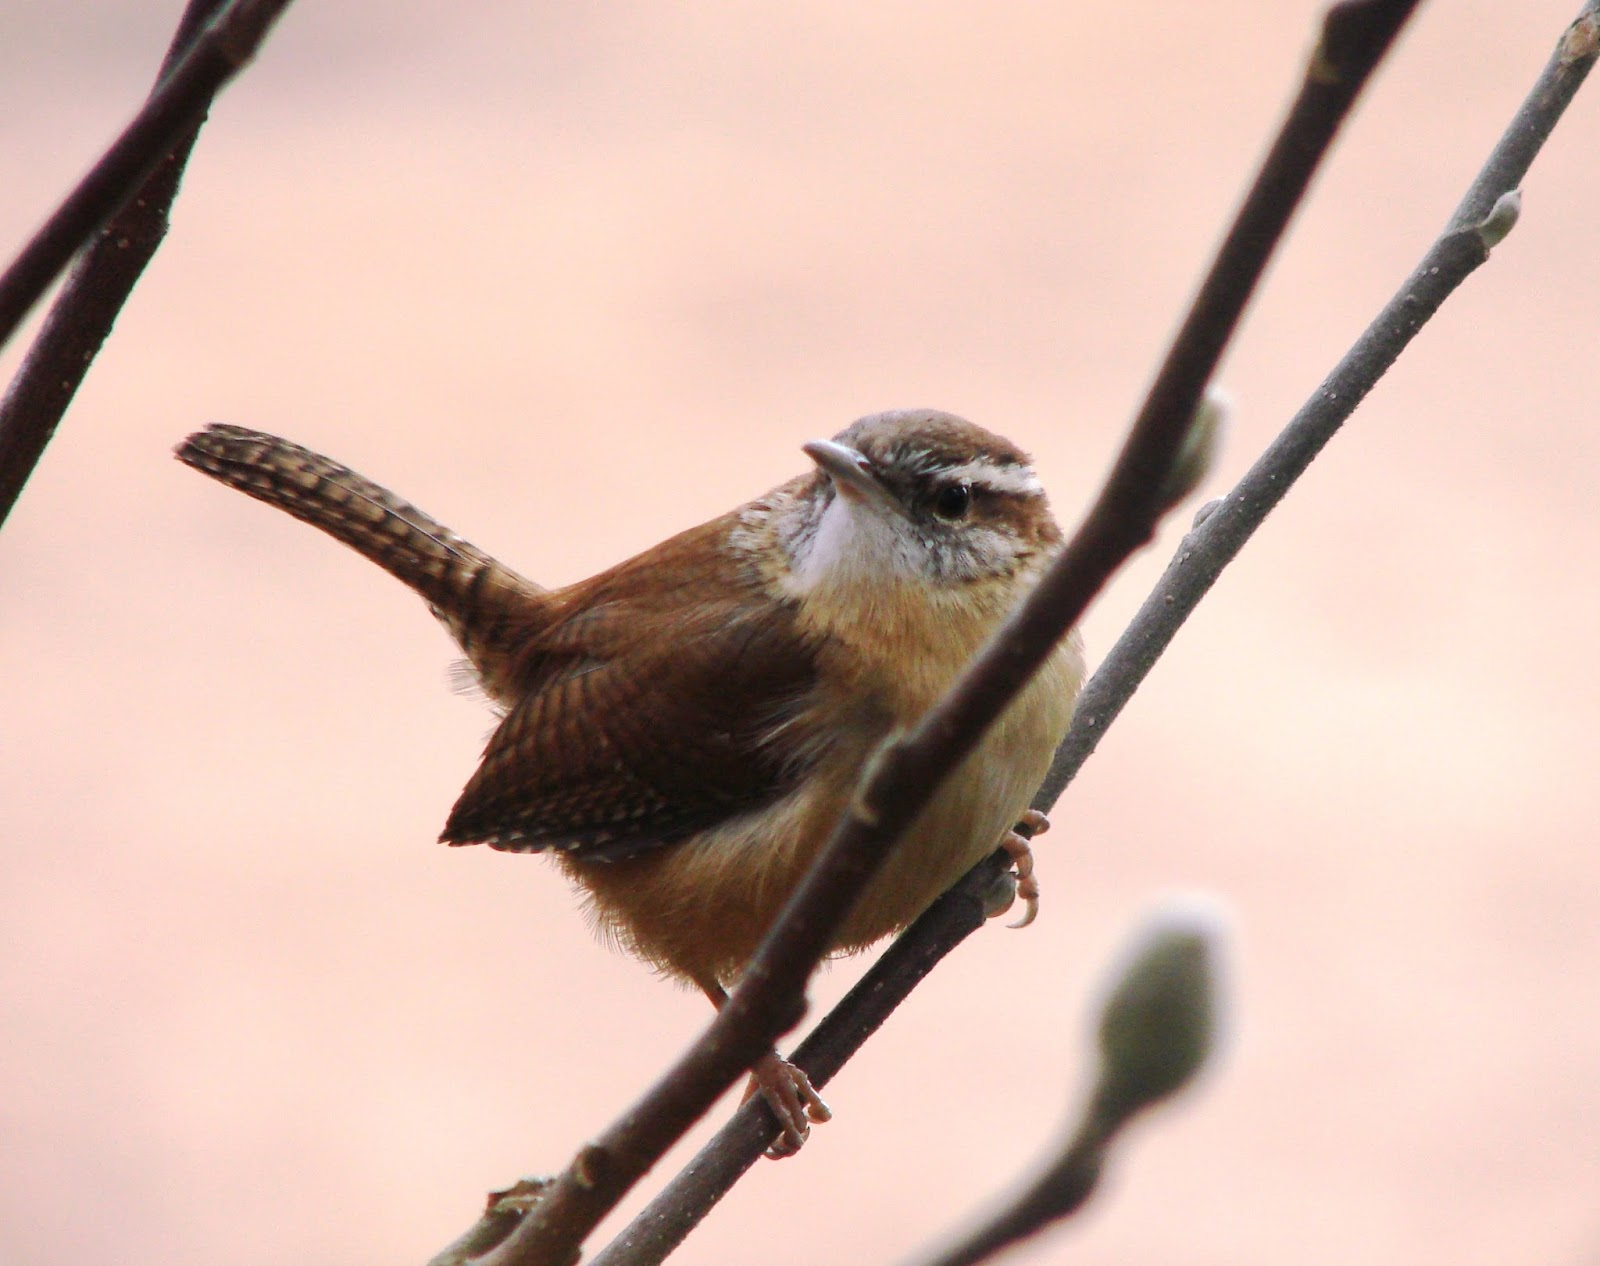 Picture of a house wren.